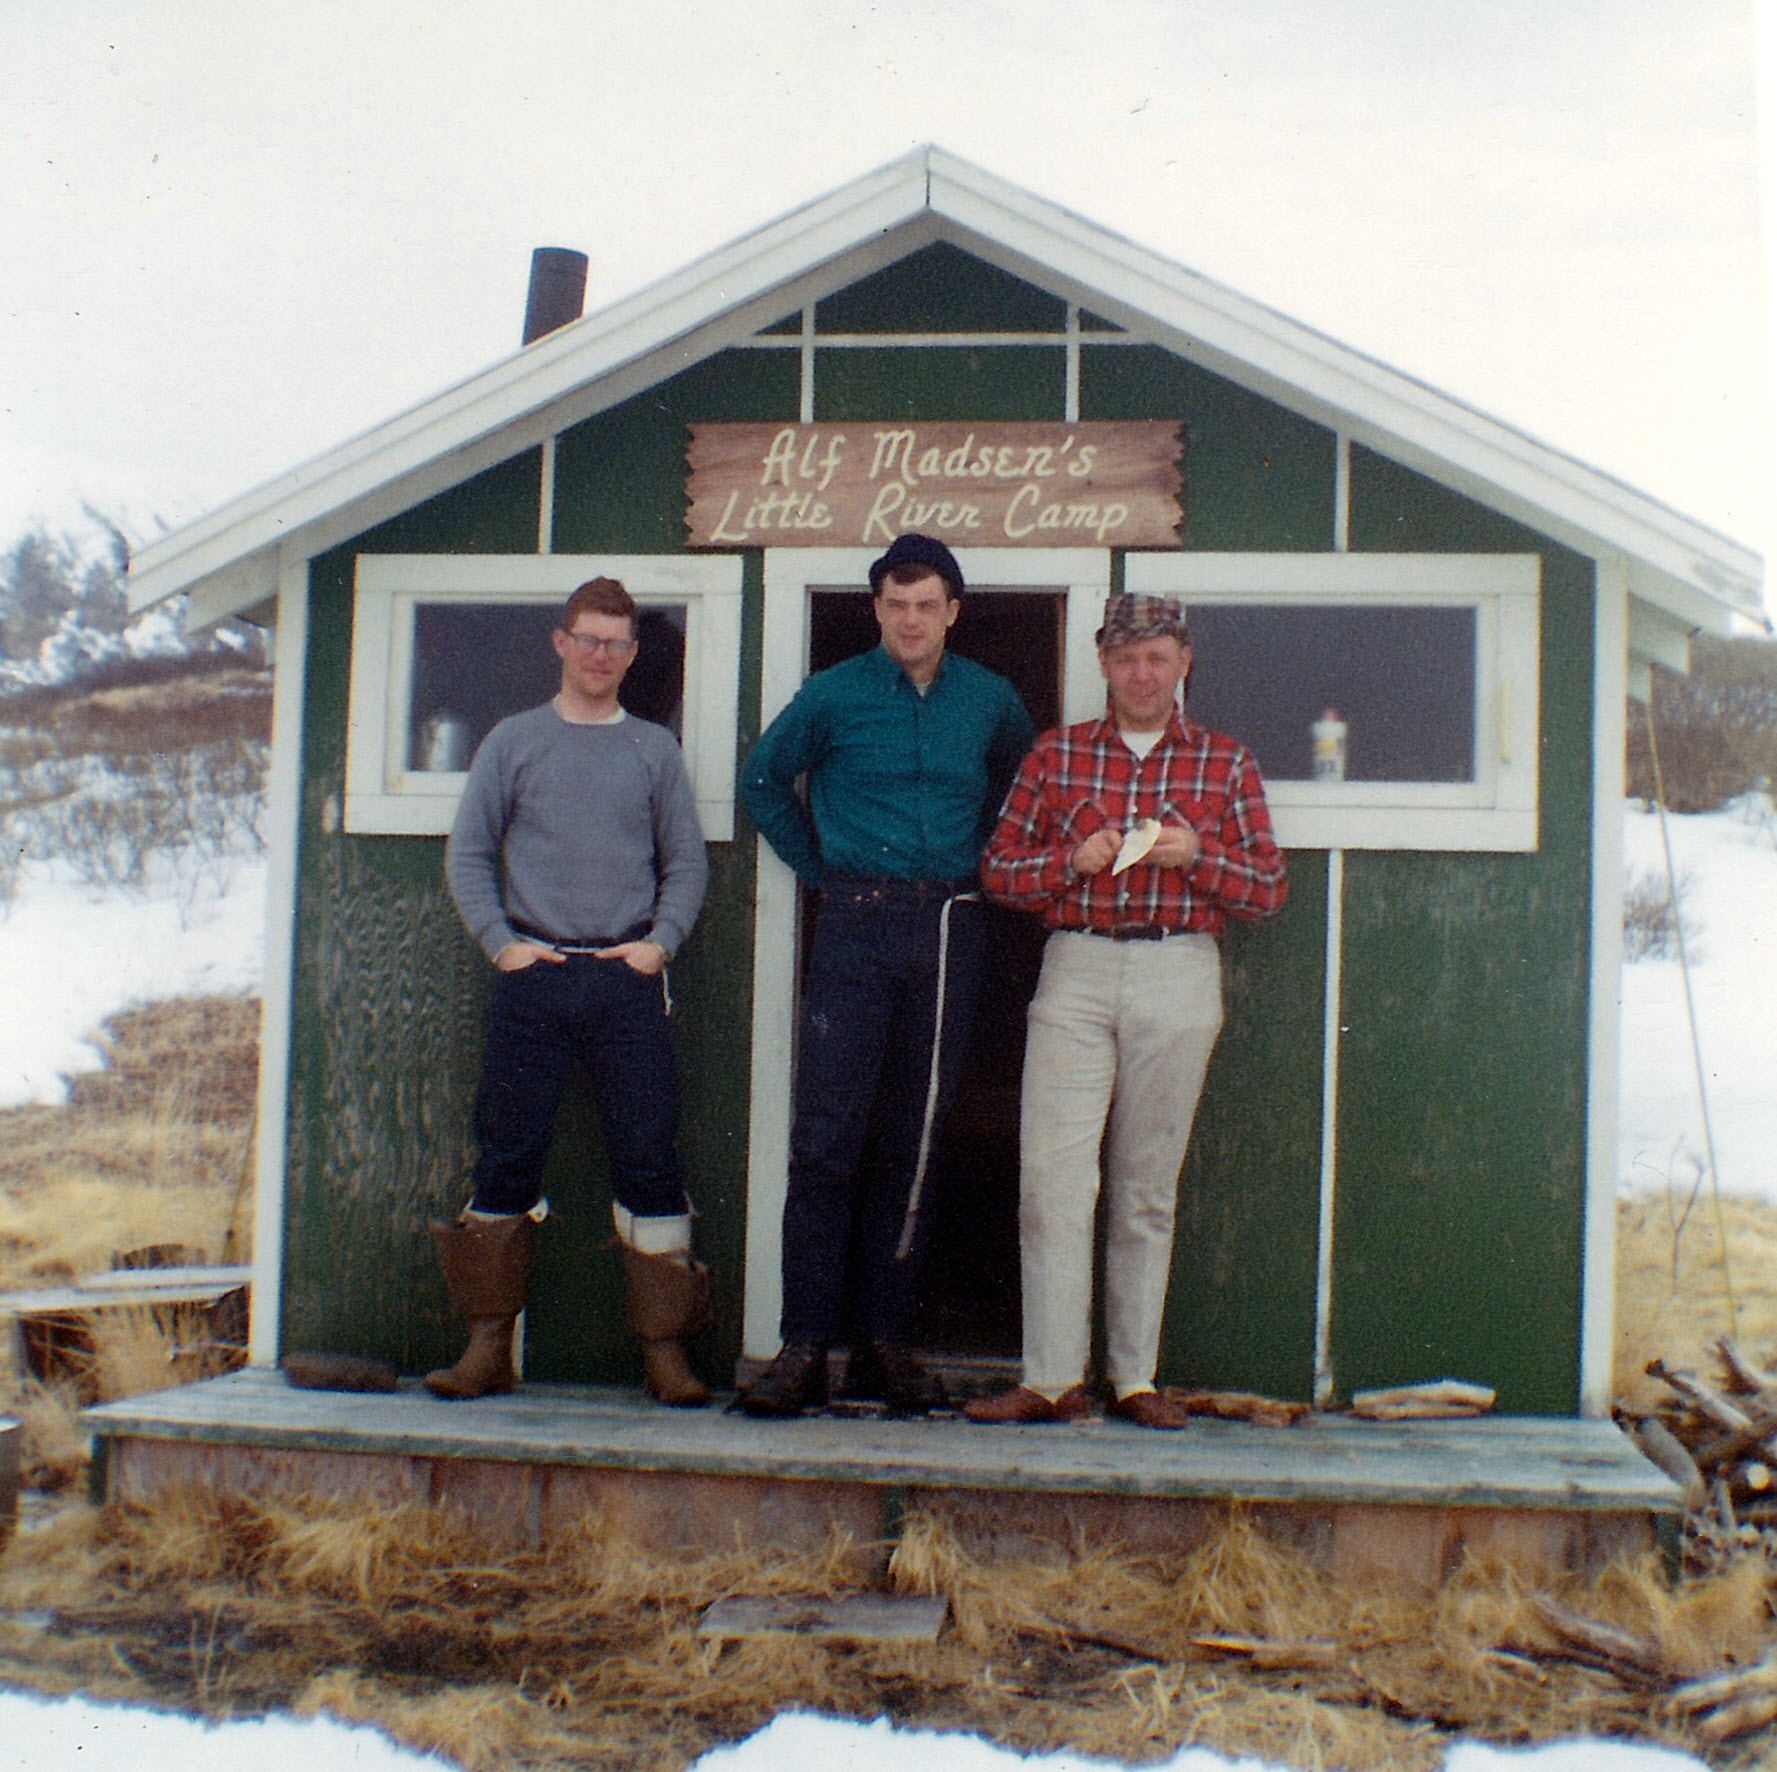 (L to R) Tex Sodergren, Gary Binkley and Denny Bush at the Little River cabin.